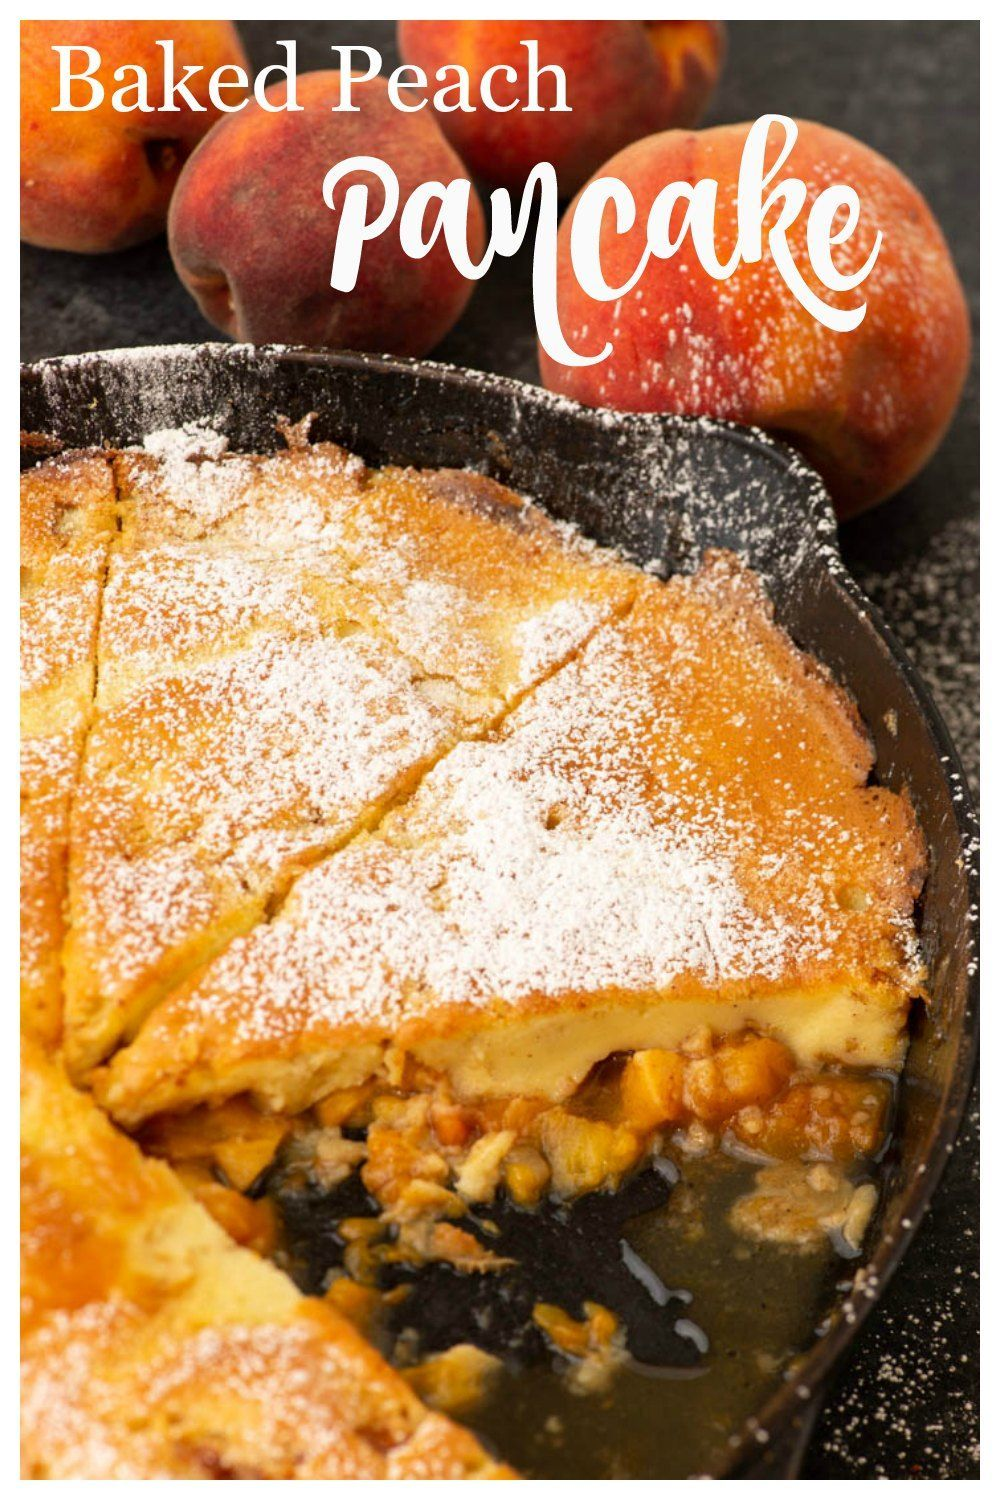 Dutch Baby Pancake A Peach Dutch Baby Pancake is just what you need for a lazy breakfast. Sweet peaches caramelized in a delicious pancake and everyone can eat at the same time!A Peach Dutch Baby Pancake is just what you need for a lazy breakfast. Sweet peaches caramelized in a delicious pancake and everyone can eat at the same time!